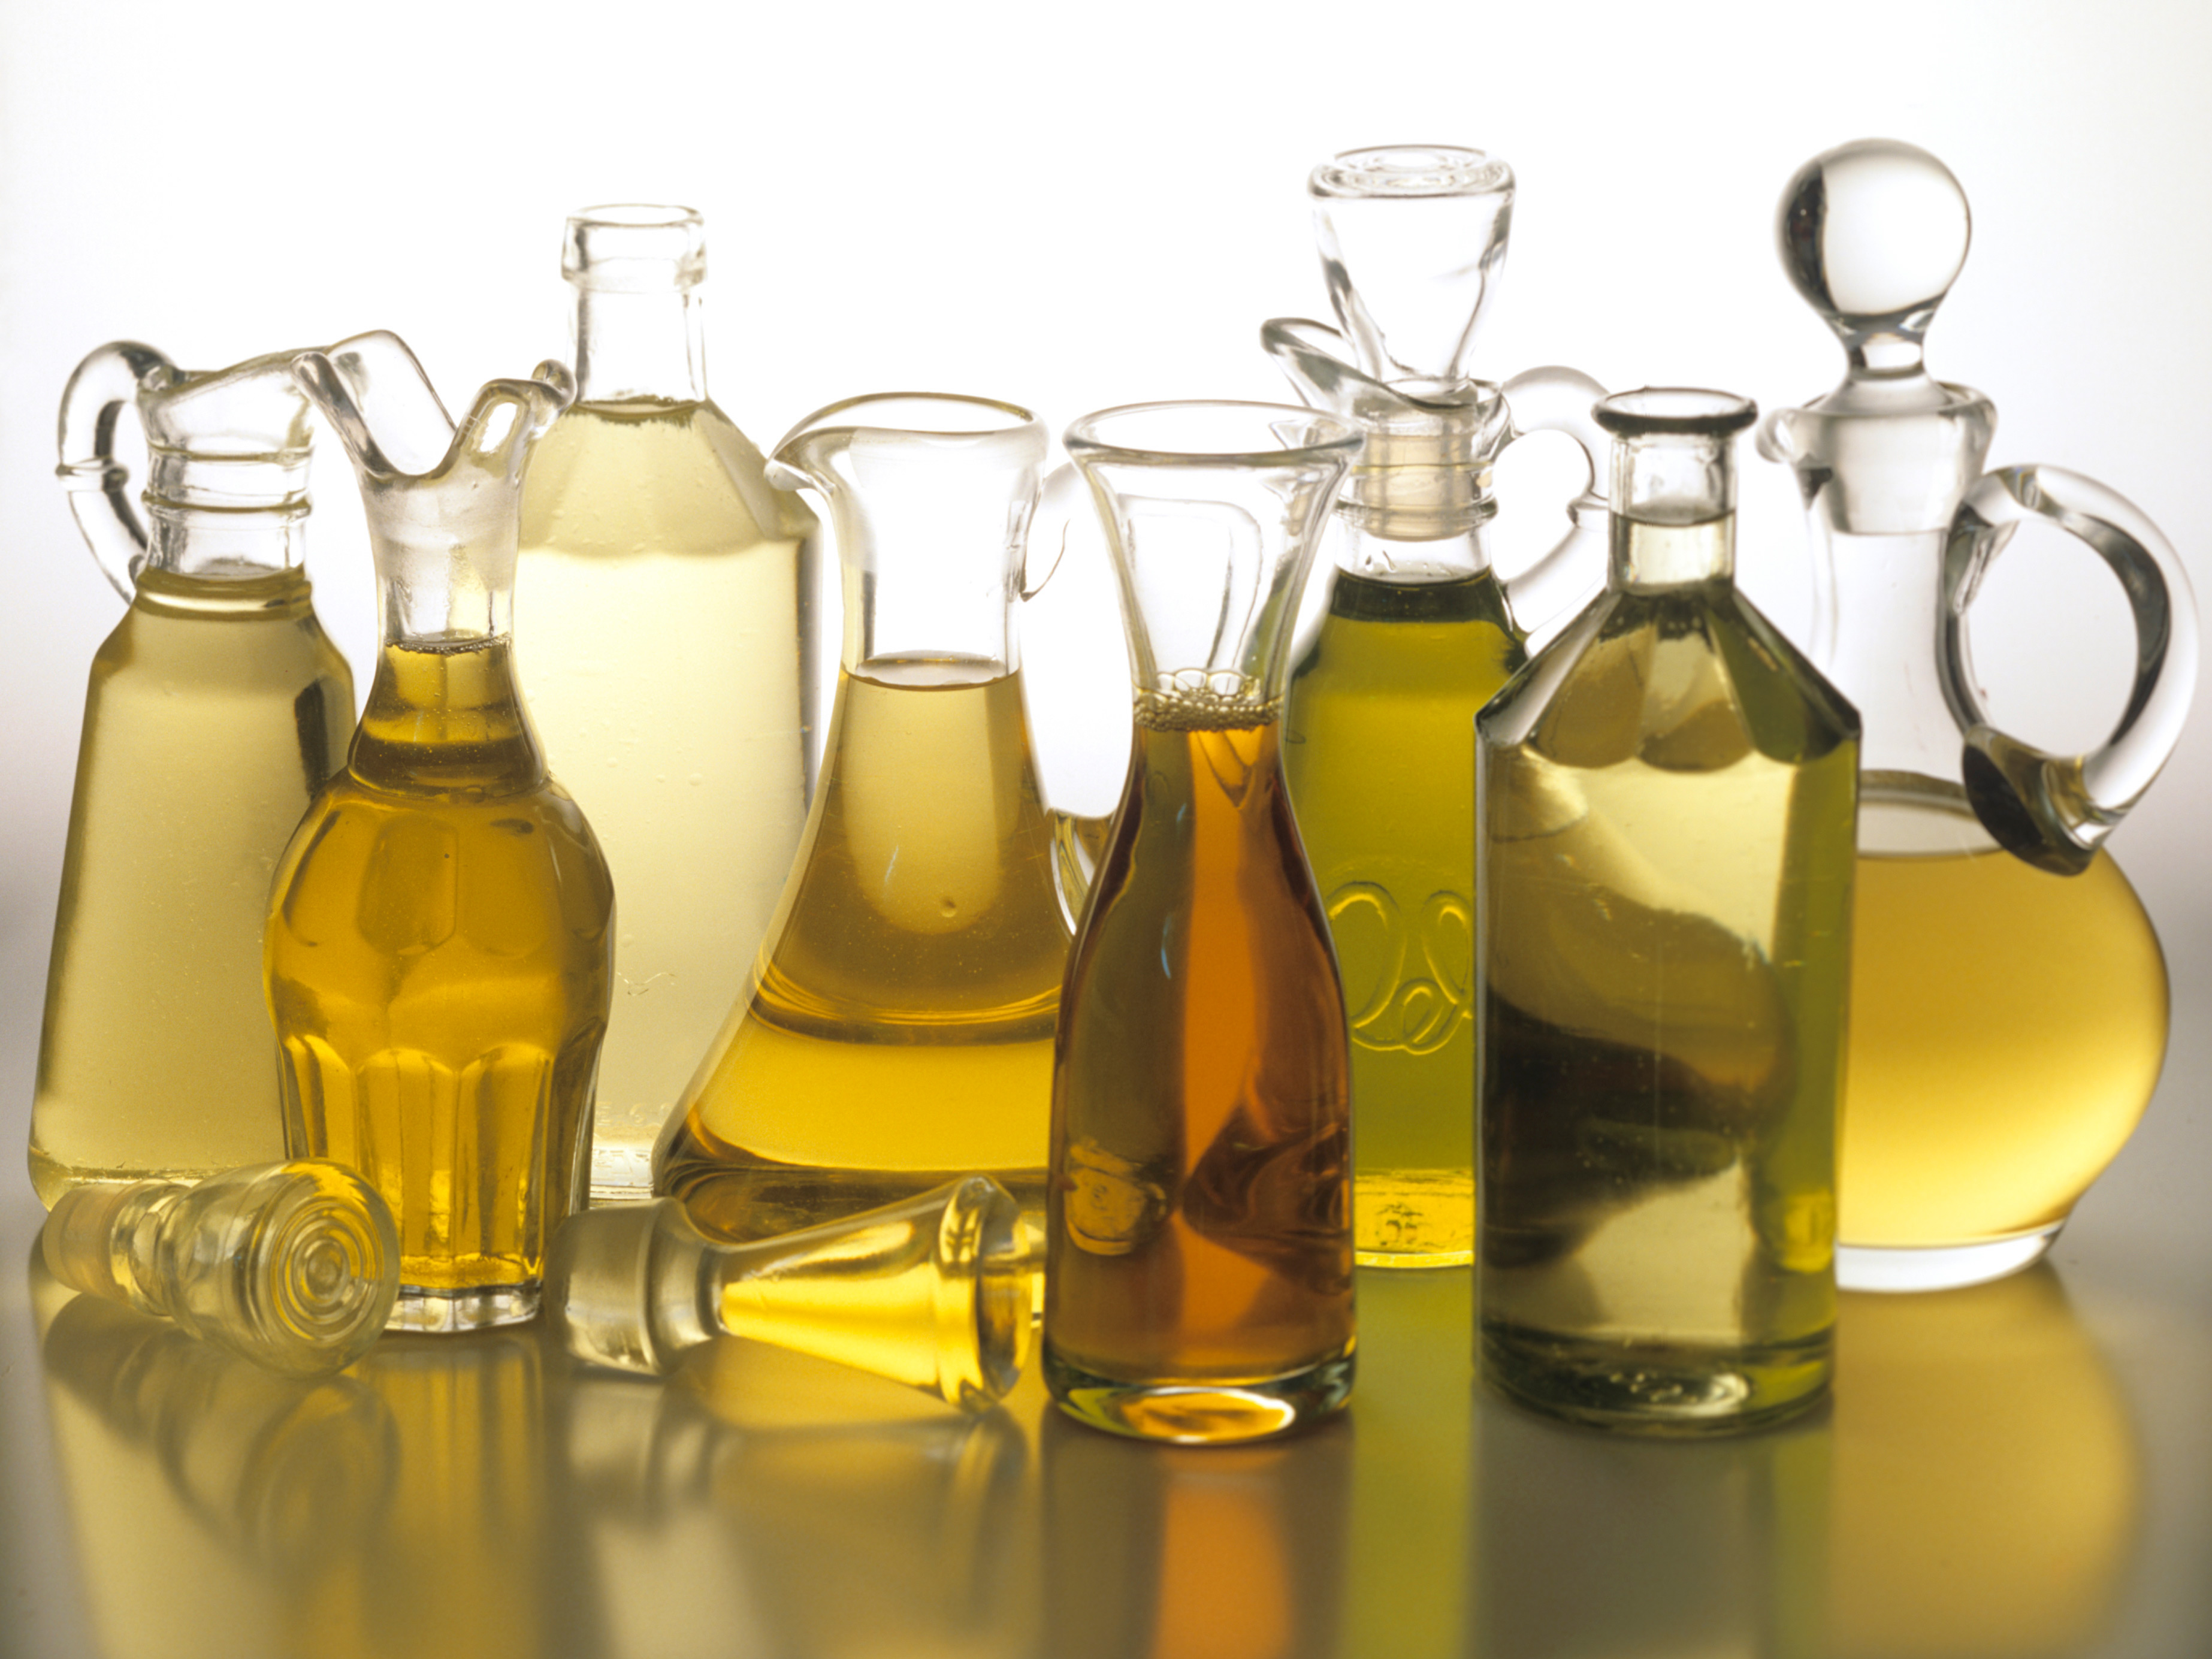 The super-vegetable oil that fights high blood pressure